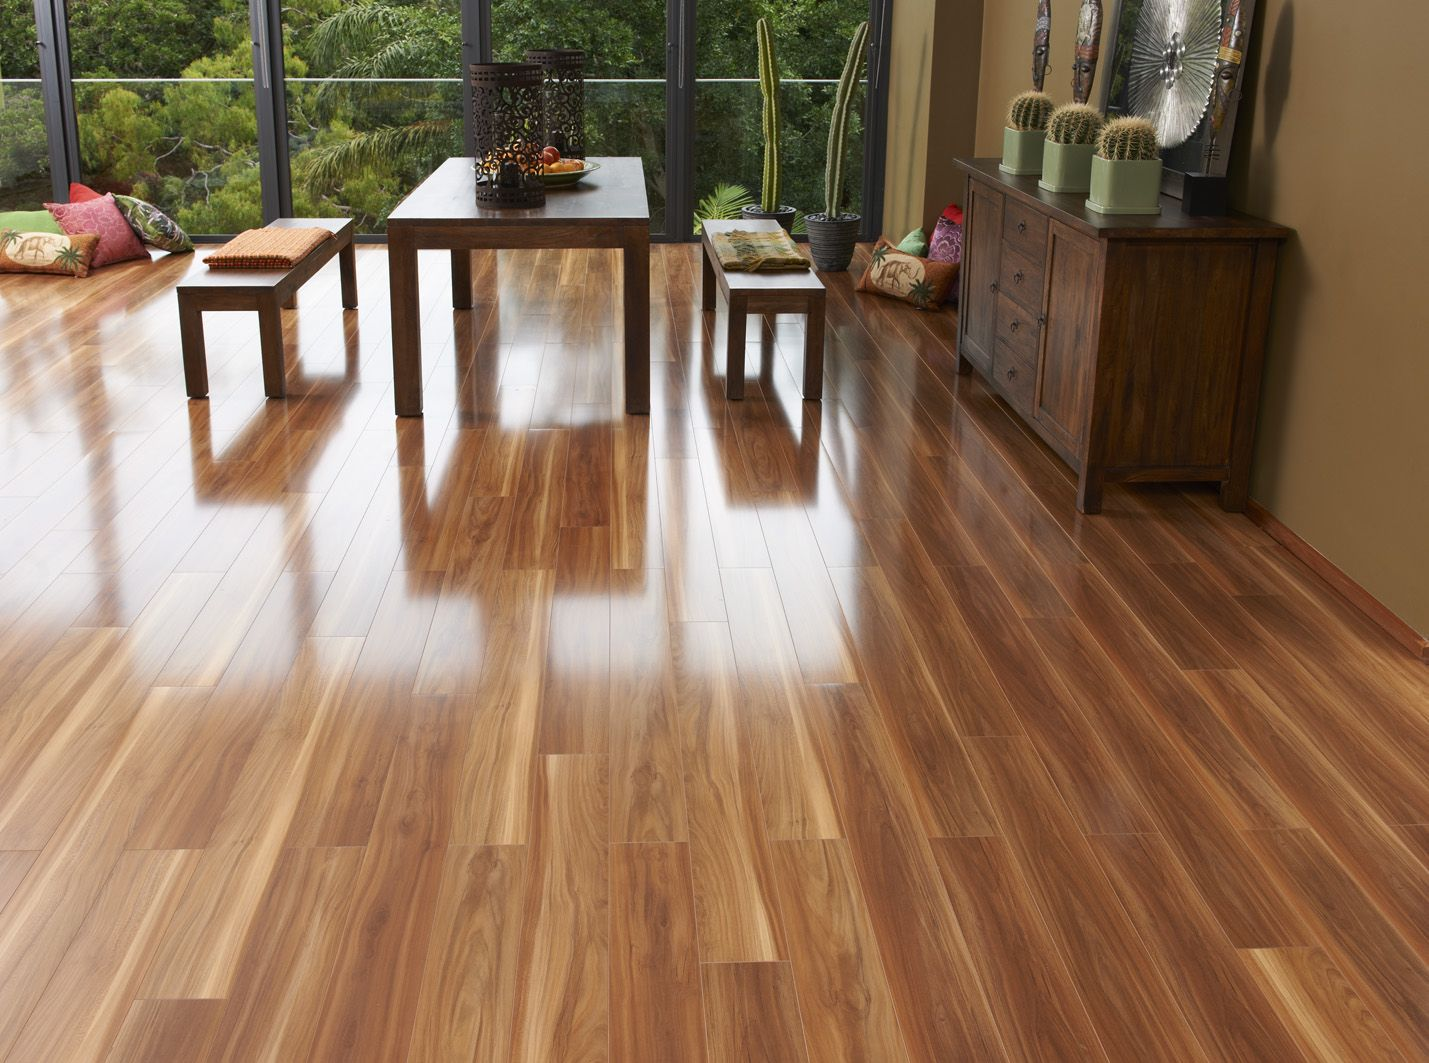 Woodtrends 'Tallowood' Laminate Flooring Perfect for